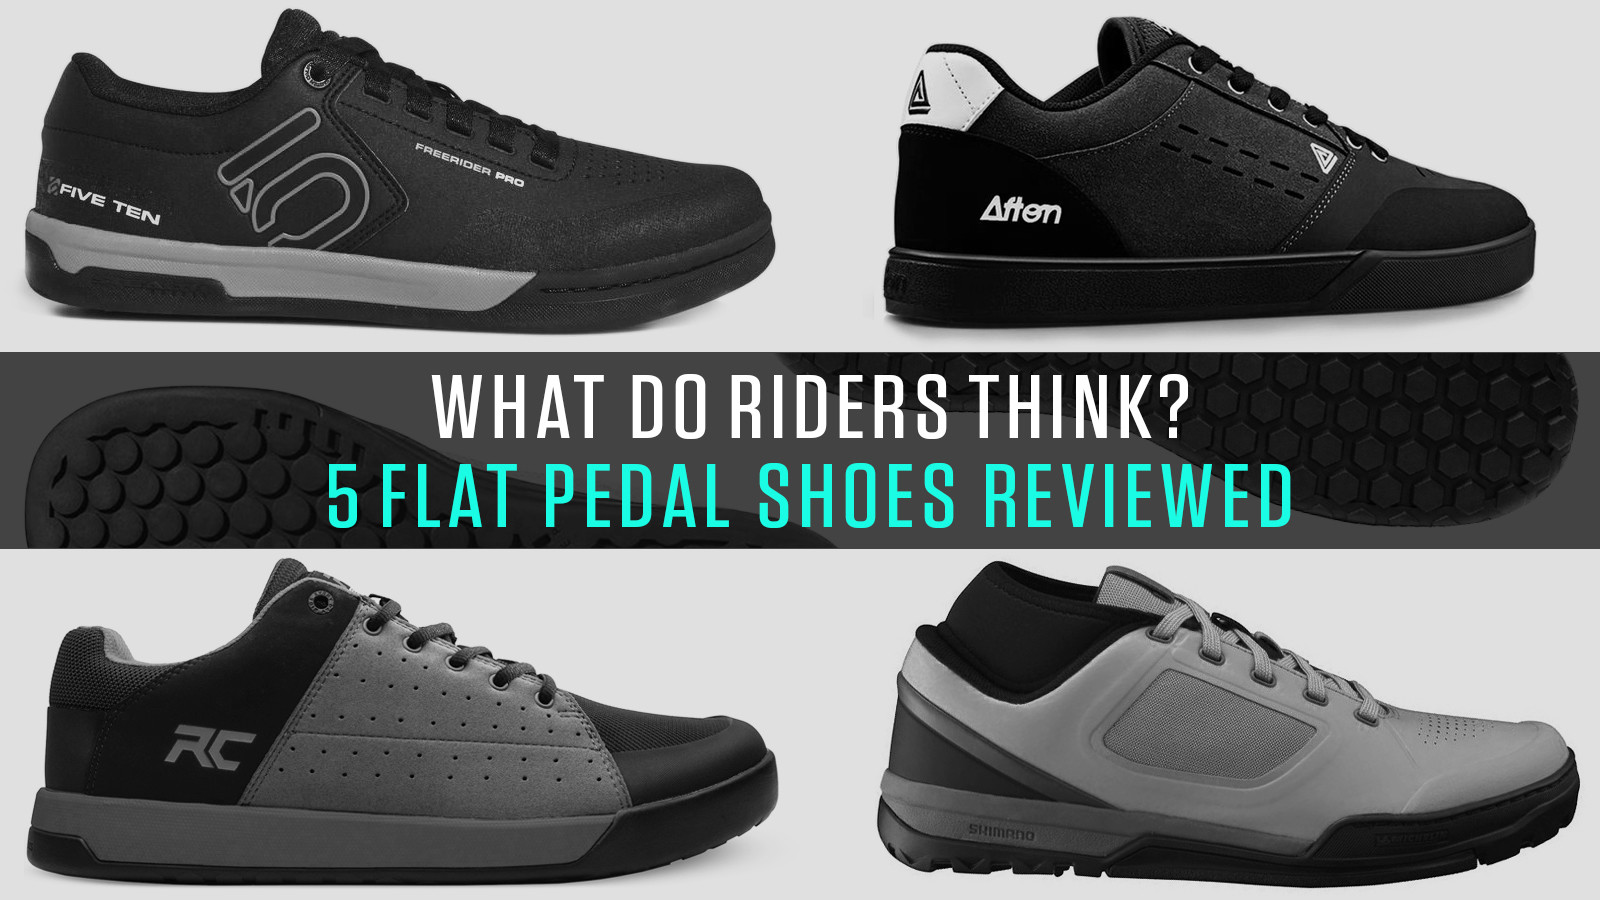 Five Flat Pedal Shoes Reviewed by Vital